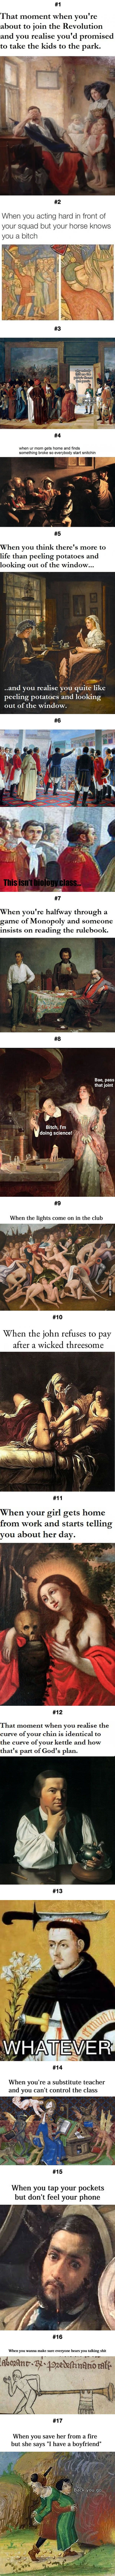 Best Of Classical Art Memes! - 9GAG